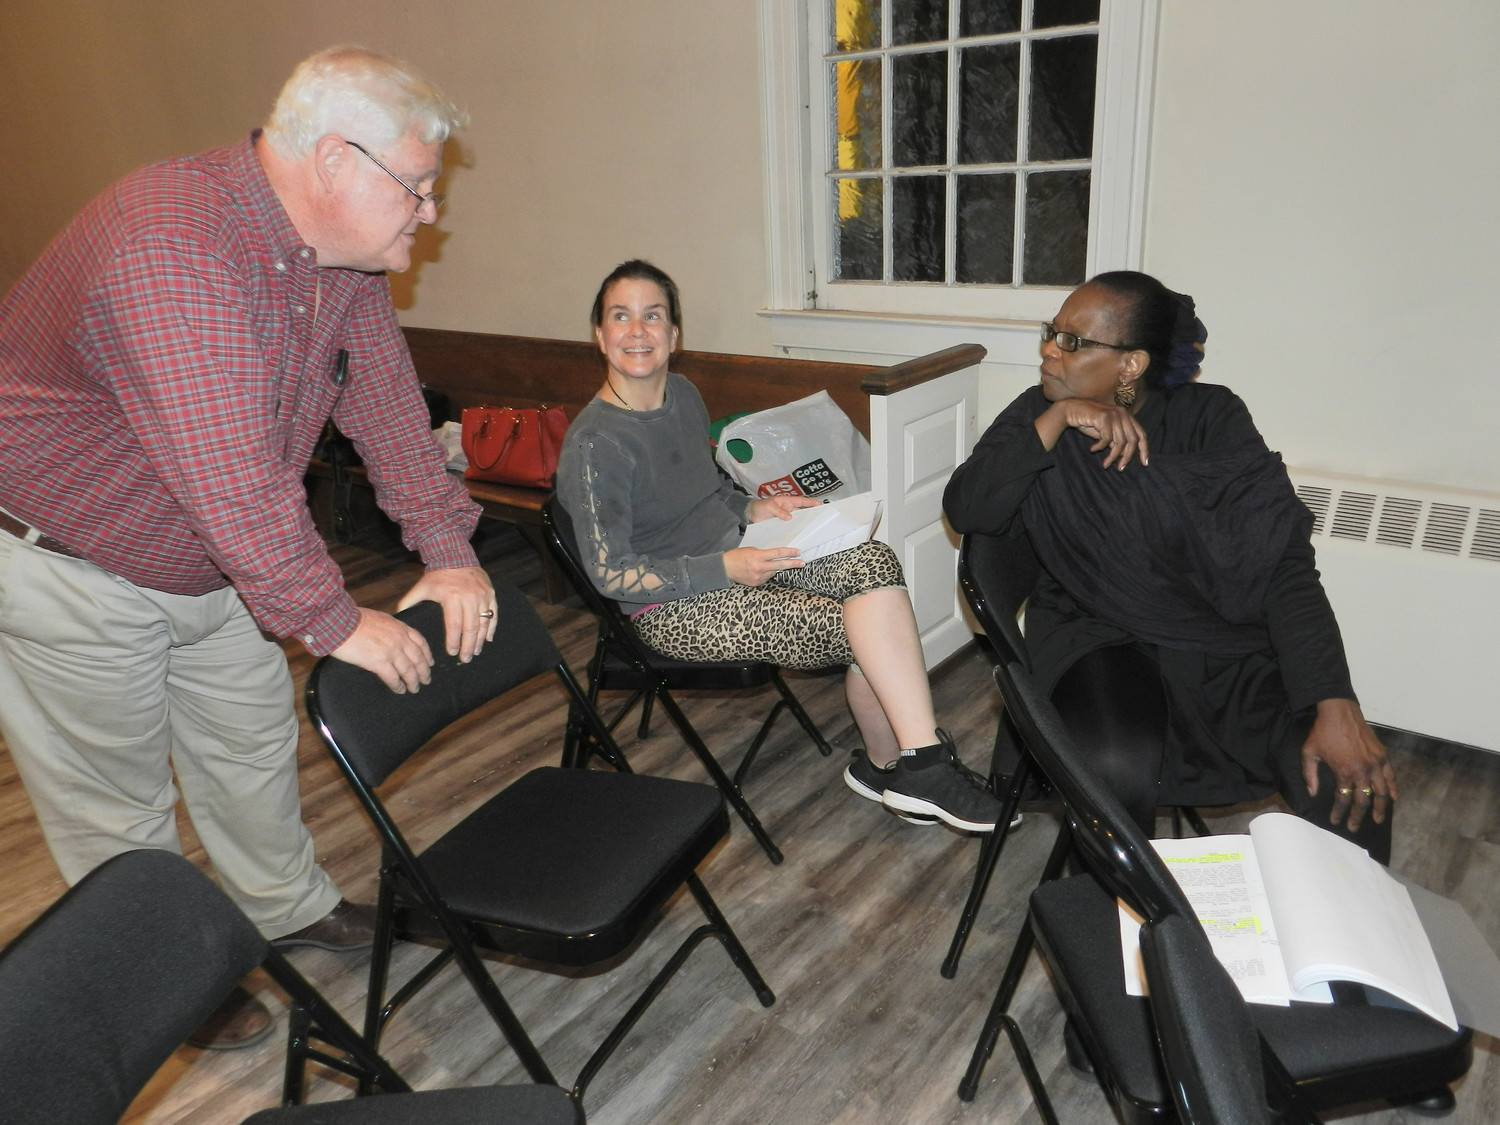 Director Patrick Reilly, left, of Freeport, reviewed a scene with cast members Olivia Hill and Alisha Evans.